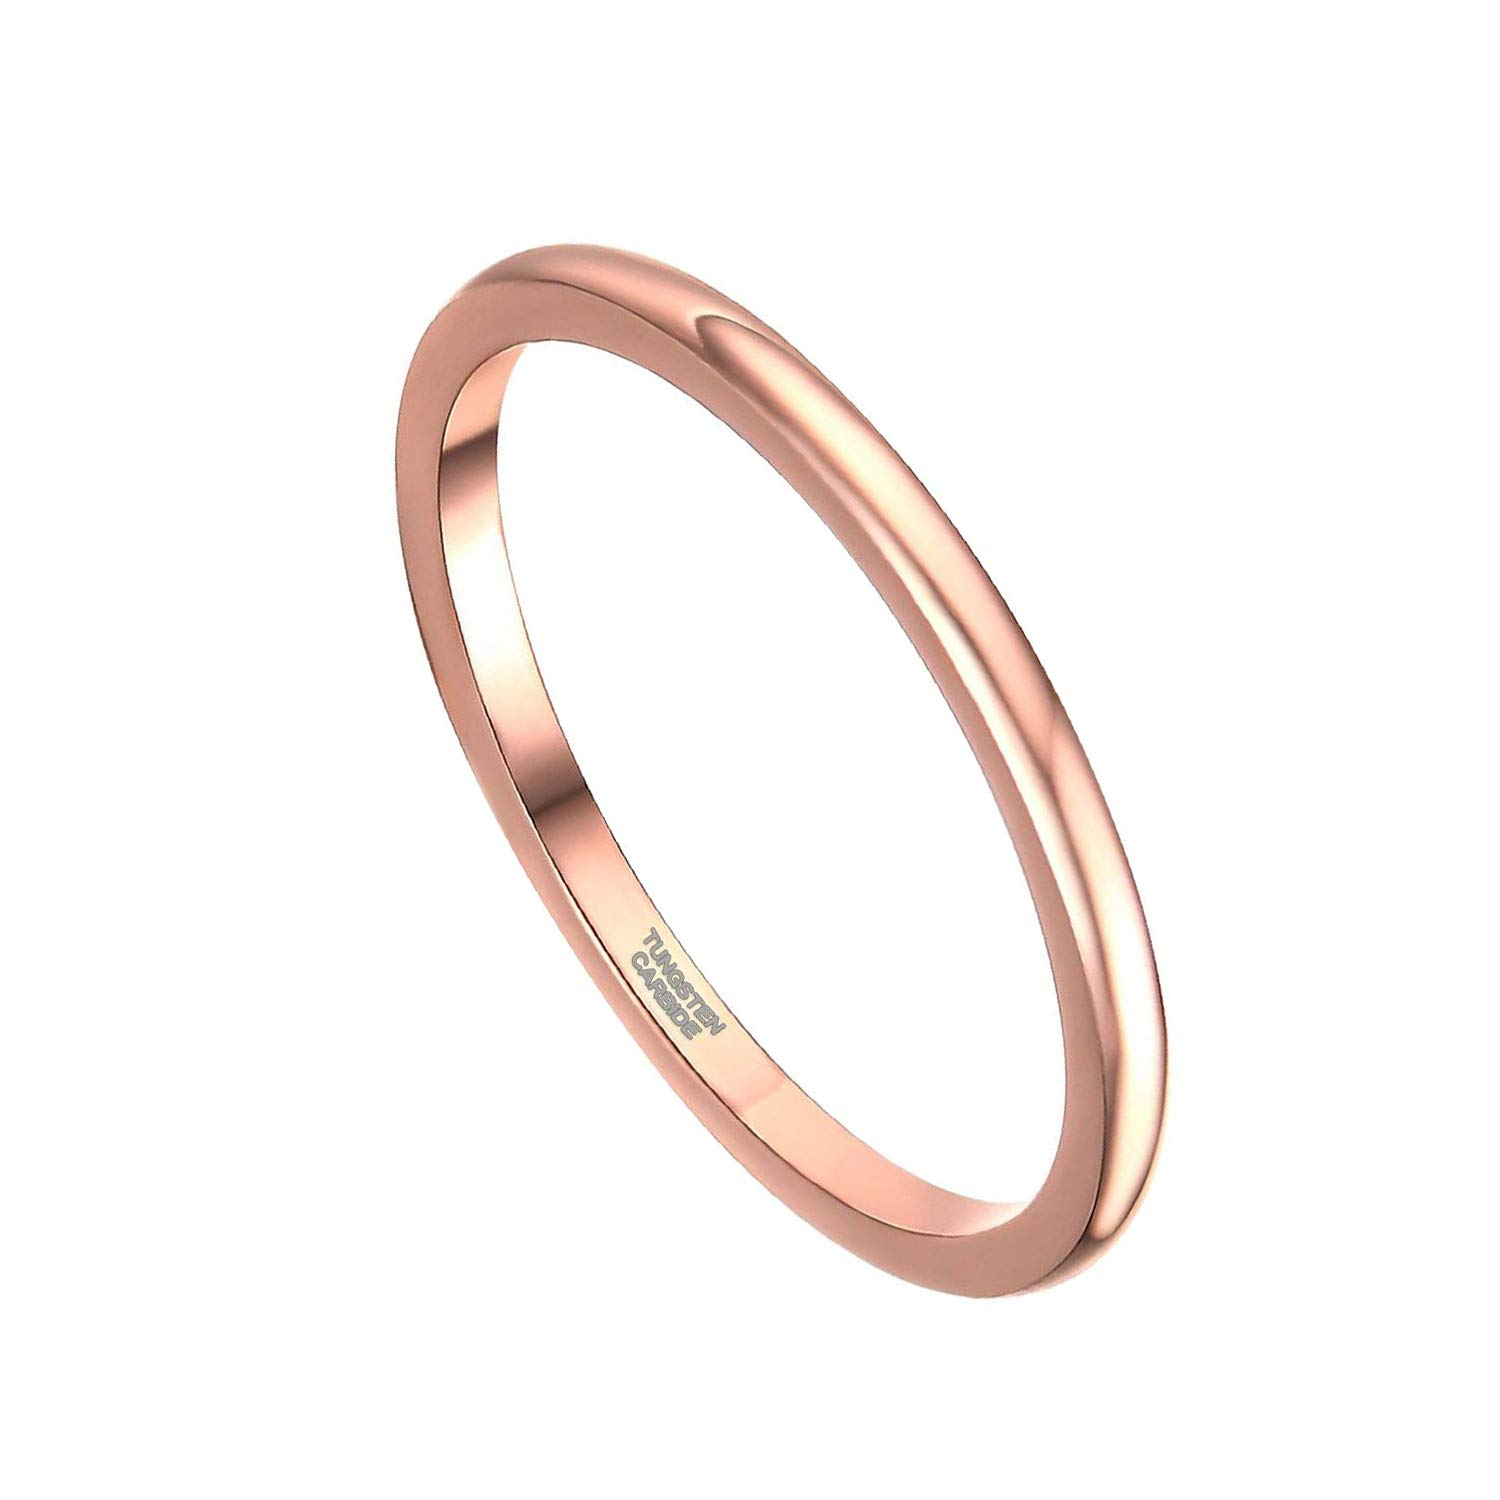 Greenpod 2mm Thin Tungsten Wedding Bands for Women Rose Gold/Silvery Domed Slim Engagement Promise Ring Comfort Fit Mon180R